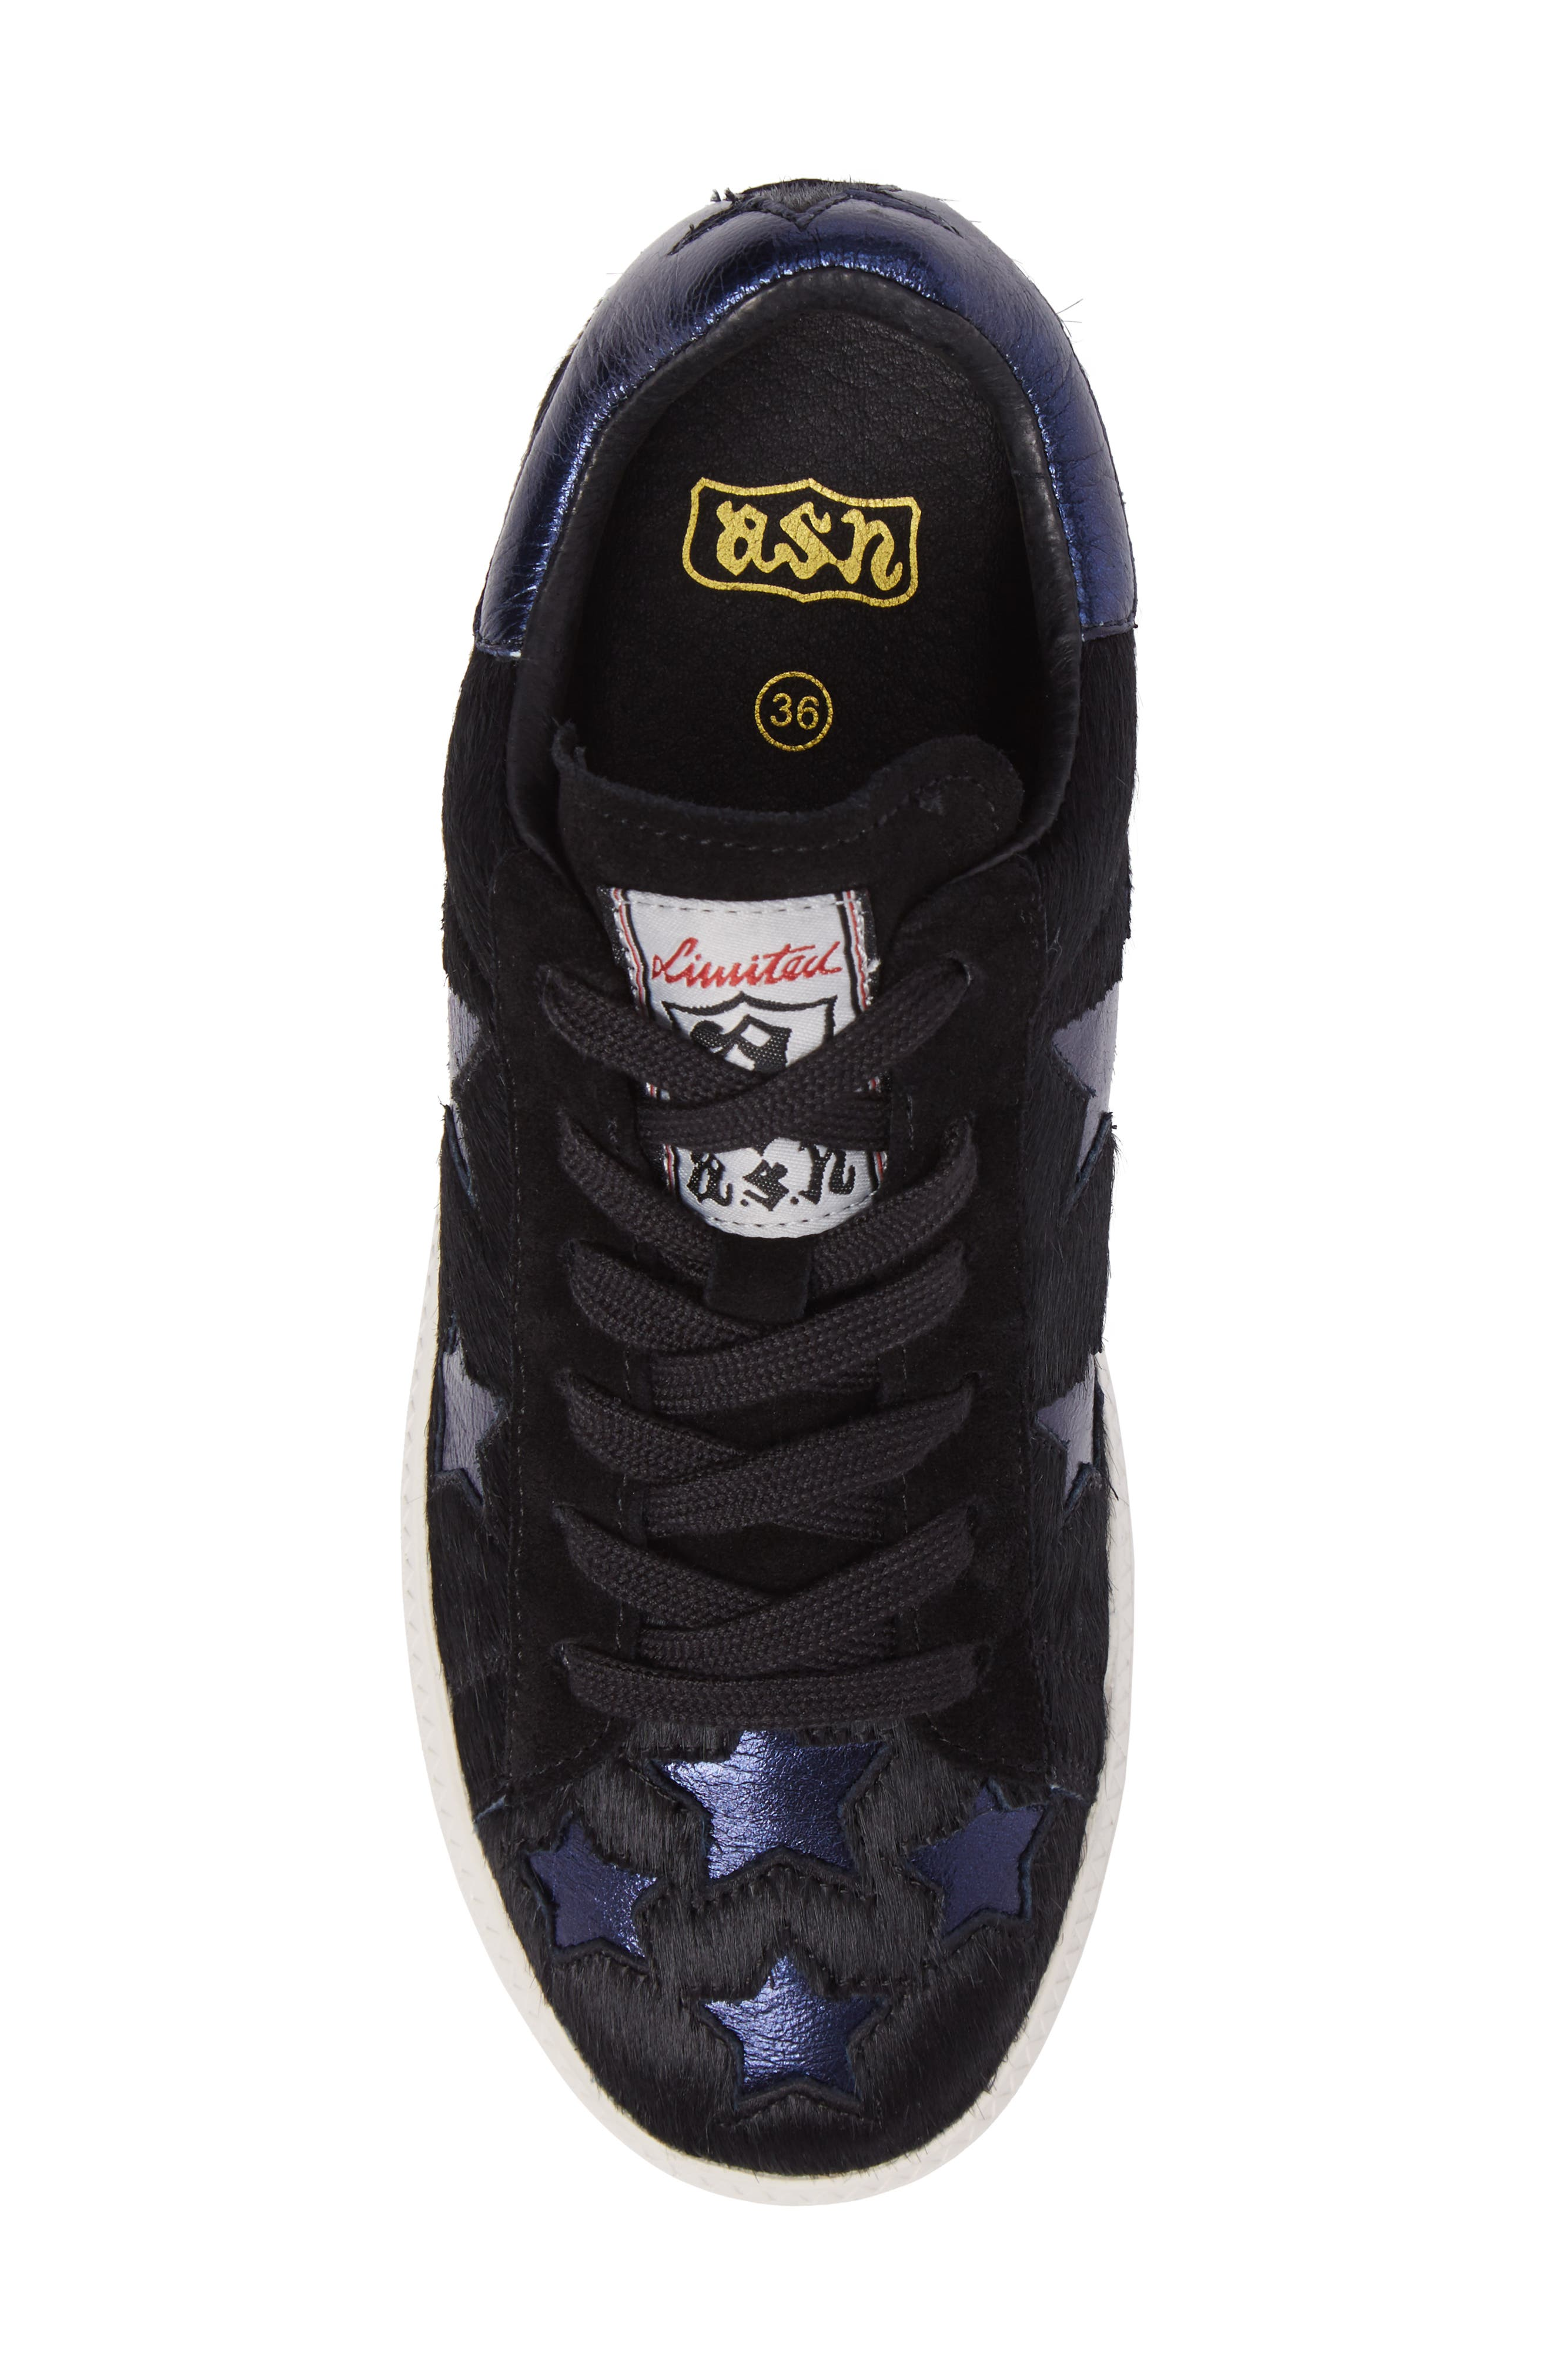 Cult Star Calf Hair Sneaker,                             Alternate thumbnail 5, color,                             Black/ Midnight Leather